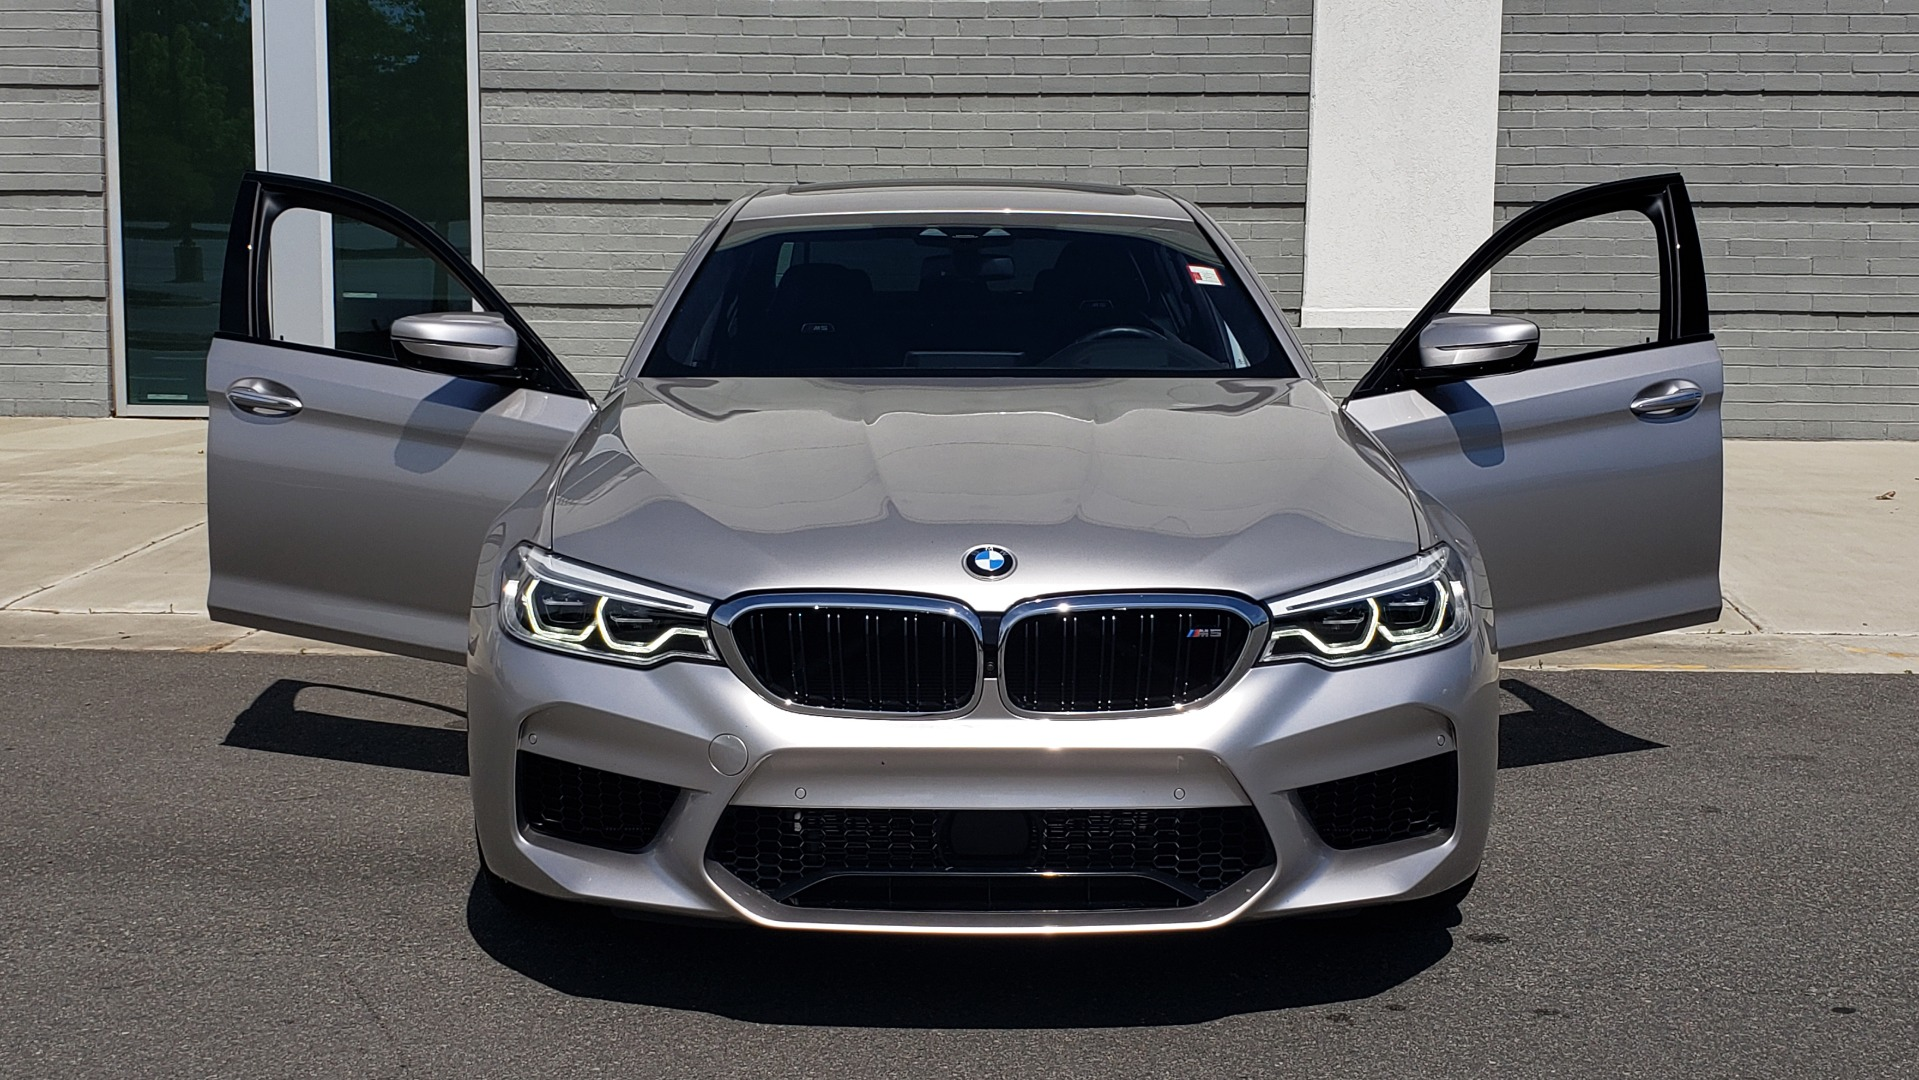 Used 2018 BMW M5 SEDAN / EXEC PKG / DRVR ASST PLUS / MOONROOF / B&W SND for sale $81,495 at Formula Imports in Charlotte NC 28227 18